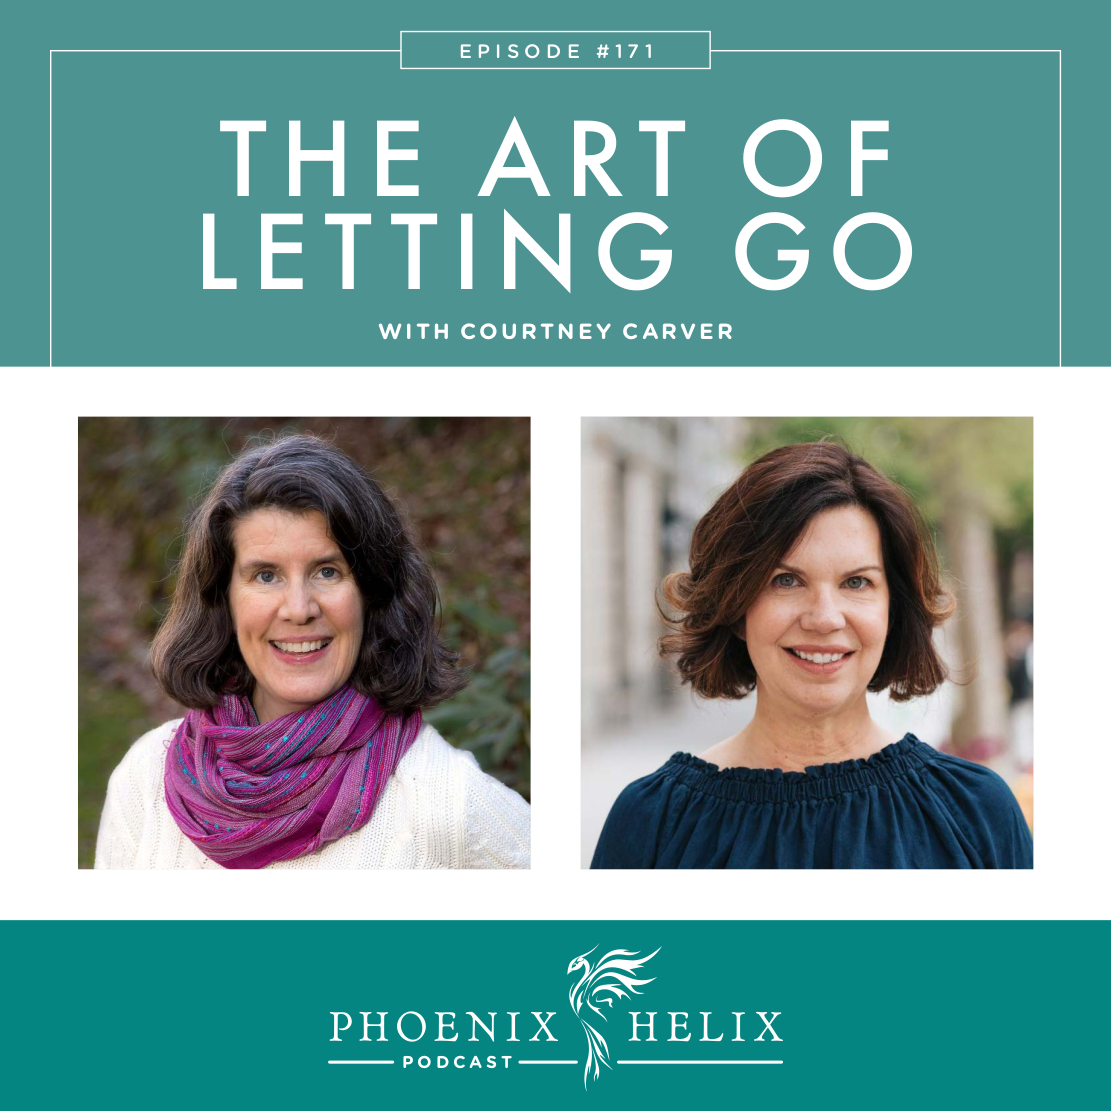 The Art of Letting Go with Courtney Carver | Phoenix Helix Podcast